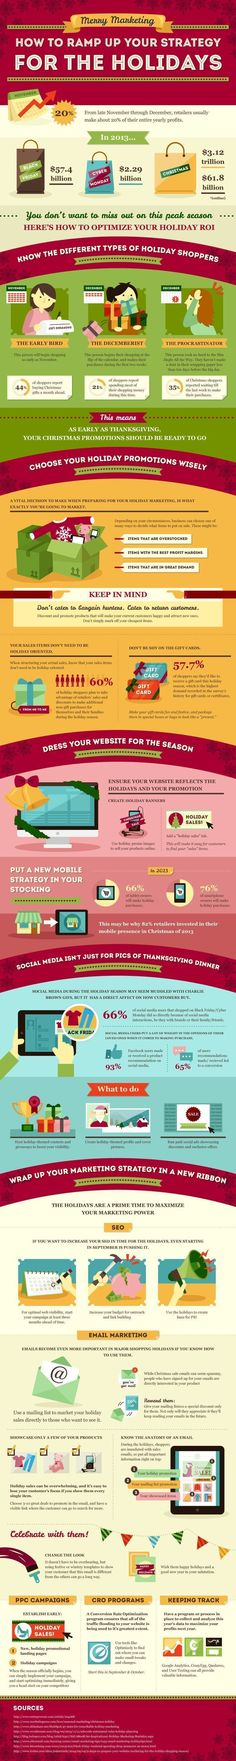 How to give your Holiday Marketing Campaign a boost Using Social Media And Search engine optimization techniques - #infographic #socialmedia #SEO #SEOTechniques #searchengineoptimizationandmarketing, #searchengineoptimizationfacebook